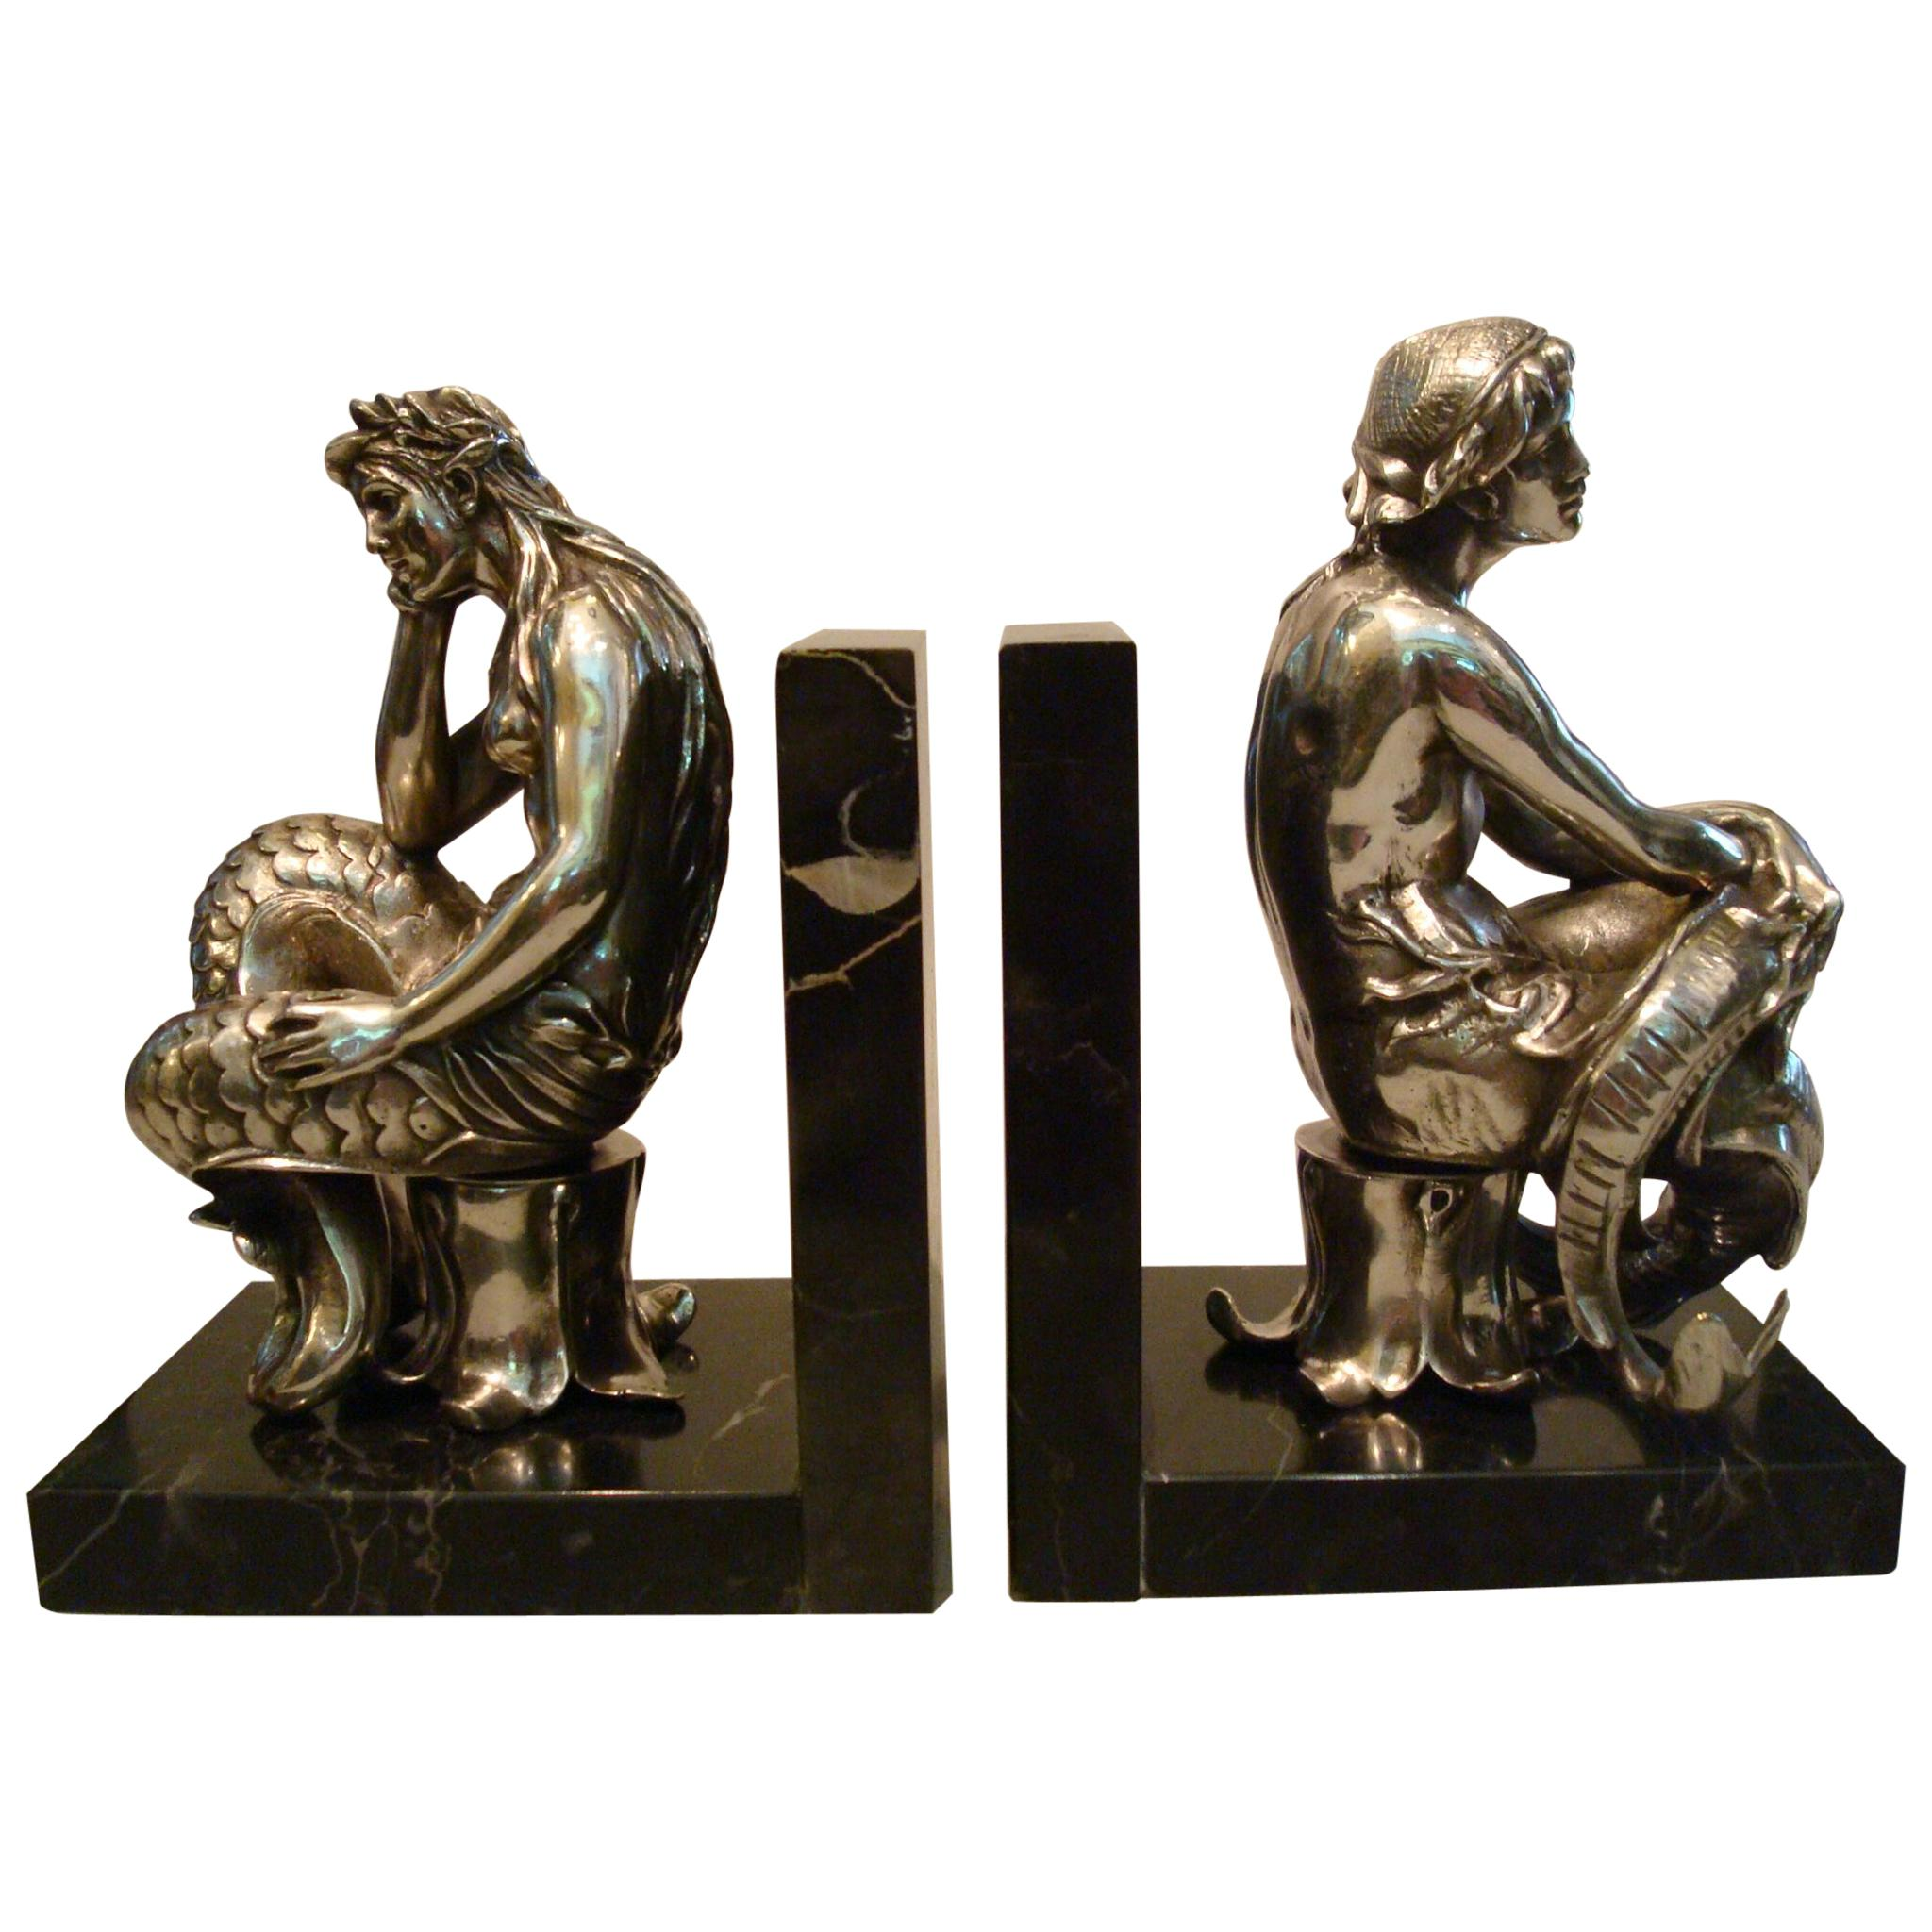 Silvered Bronze Bookends Sculptures of a Mermaid and Merman, France, 1900